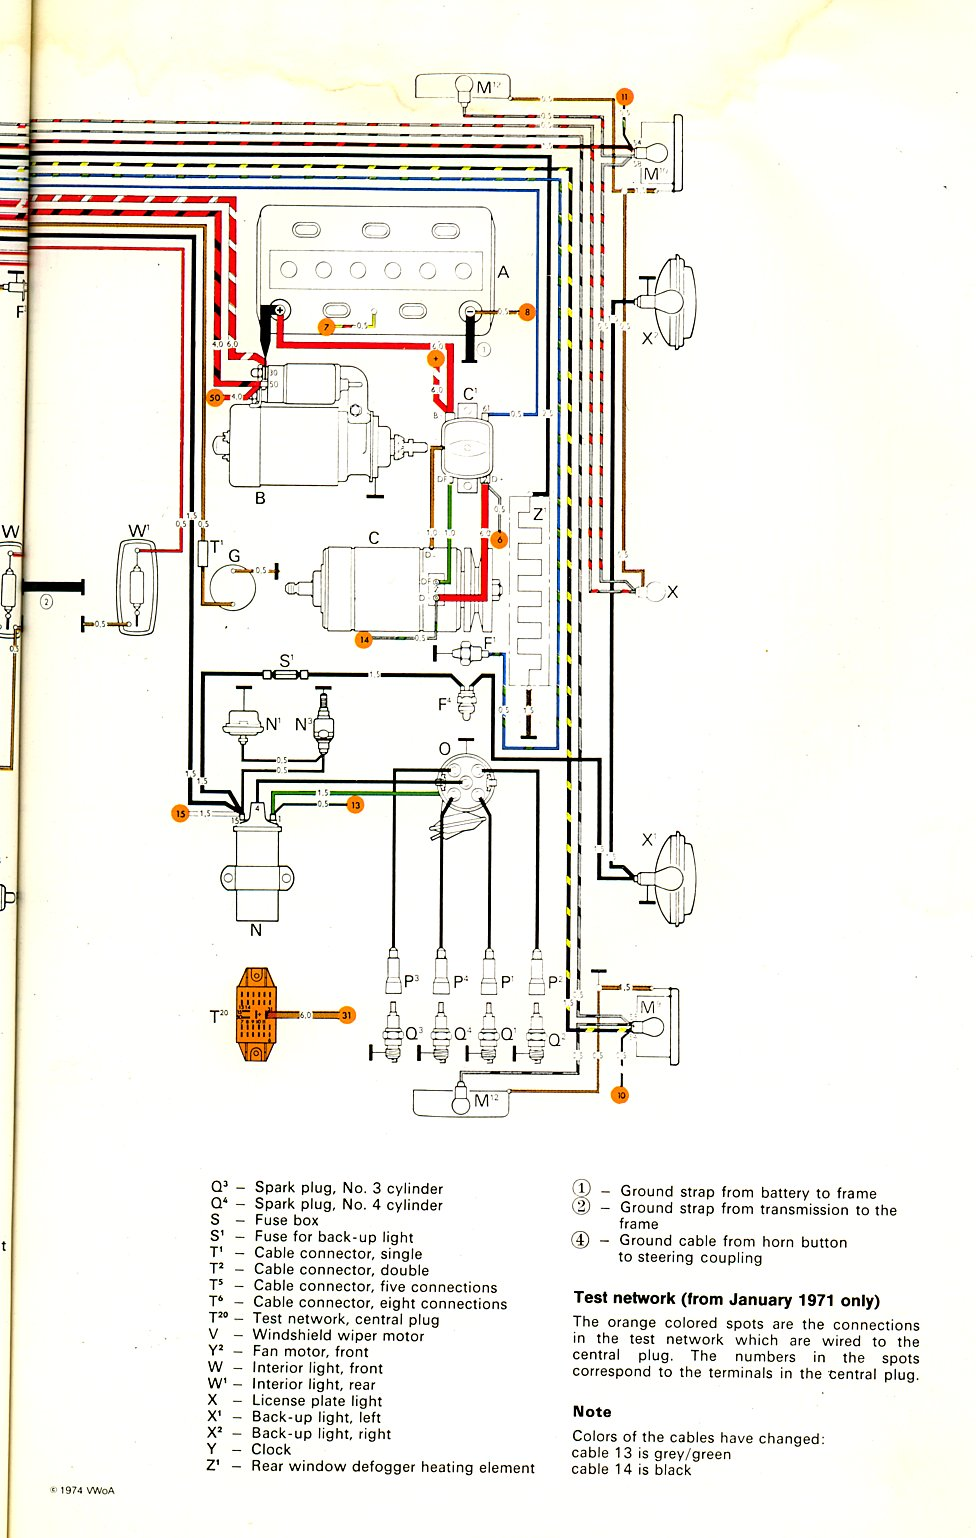 1971 Vw Bus Wiring Diagram Trusted Diagrams 1973 Super Beetle Thesamba Com Type 2 Rh